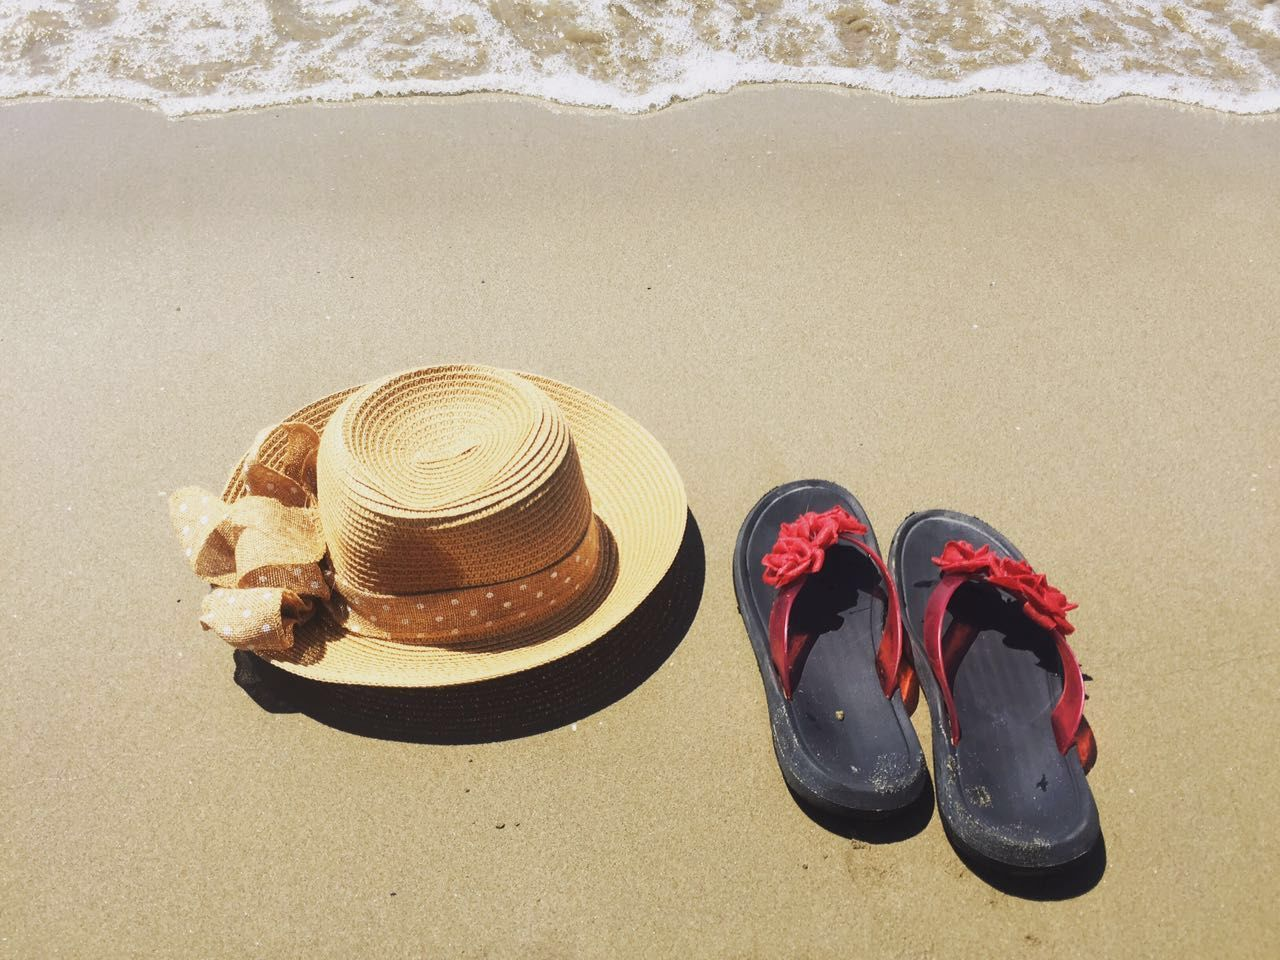 beach, shoe, land, sand, sea, pair, high angle view, water, nature, sandal, no people, trip, still life, vacations, absence, sunlight, holiday, slipper, day, outdoors, compatibility, personal accessory